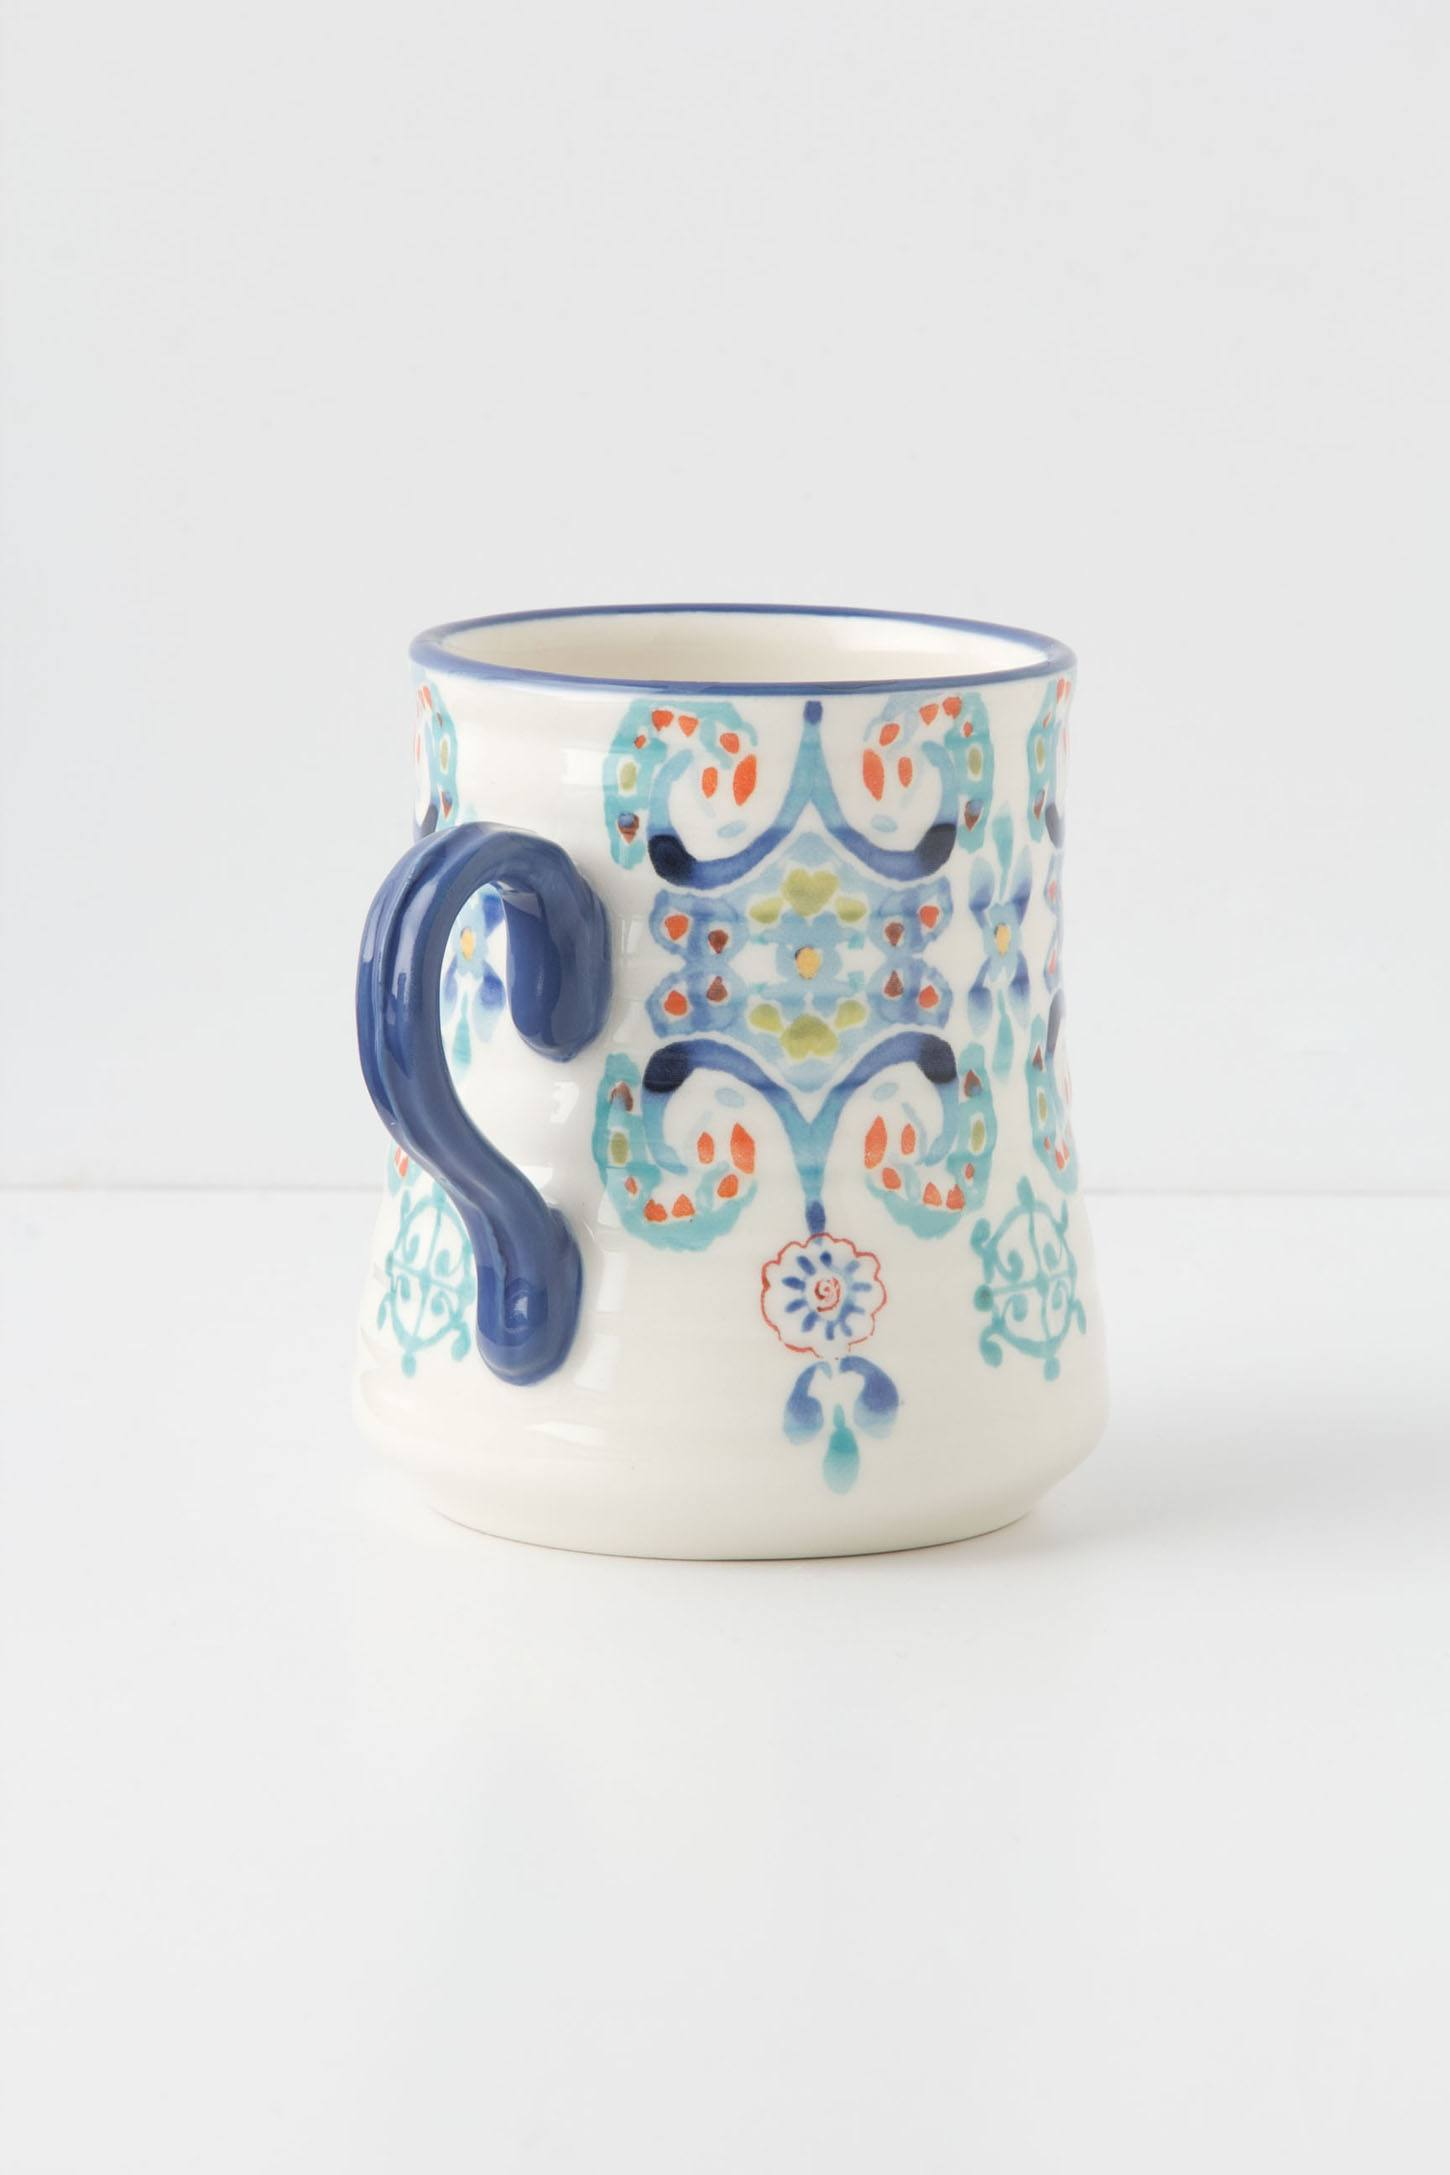 Slide View: 4: Swirled Symmetry Mug